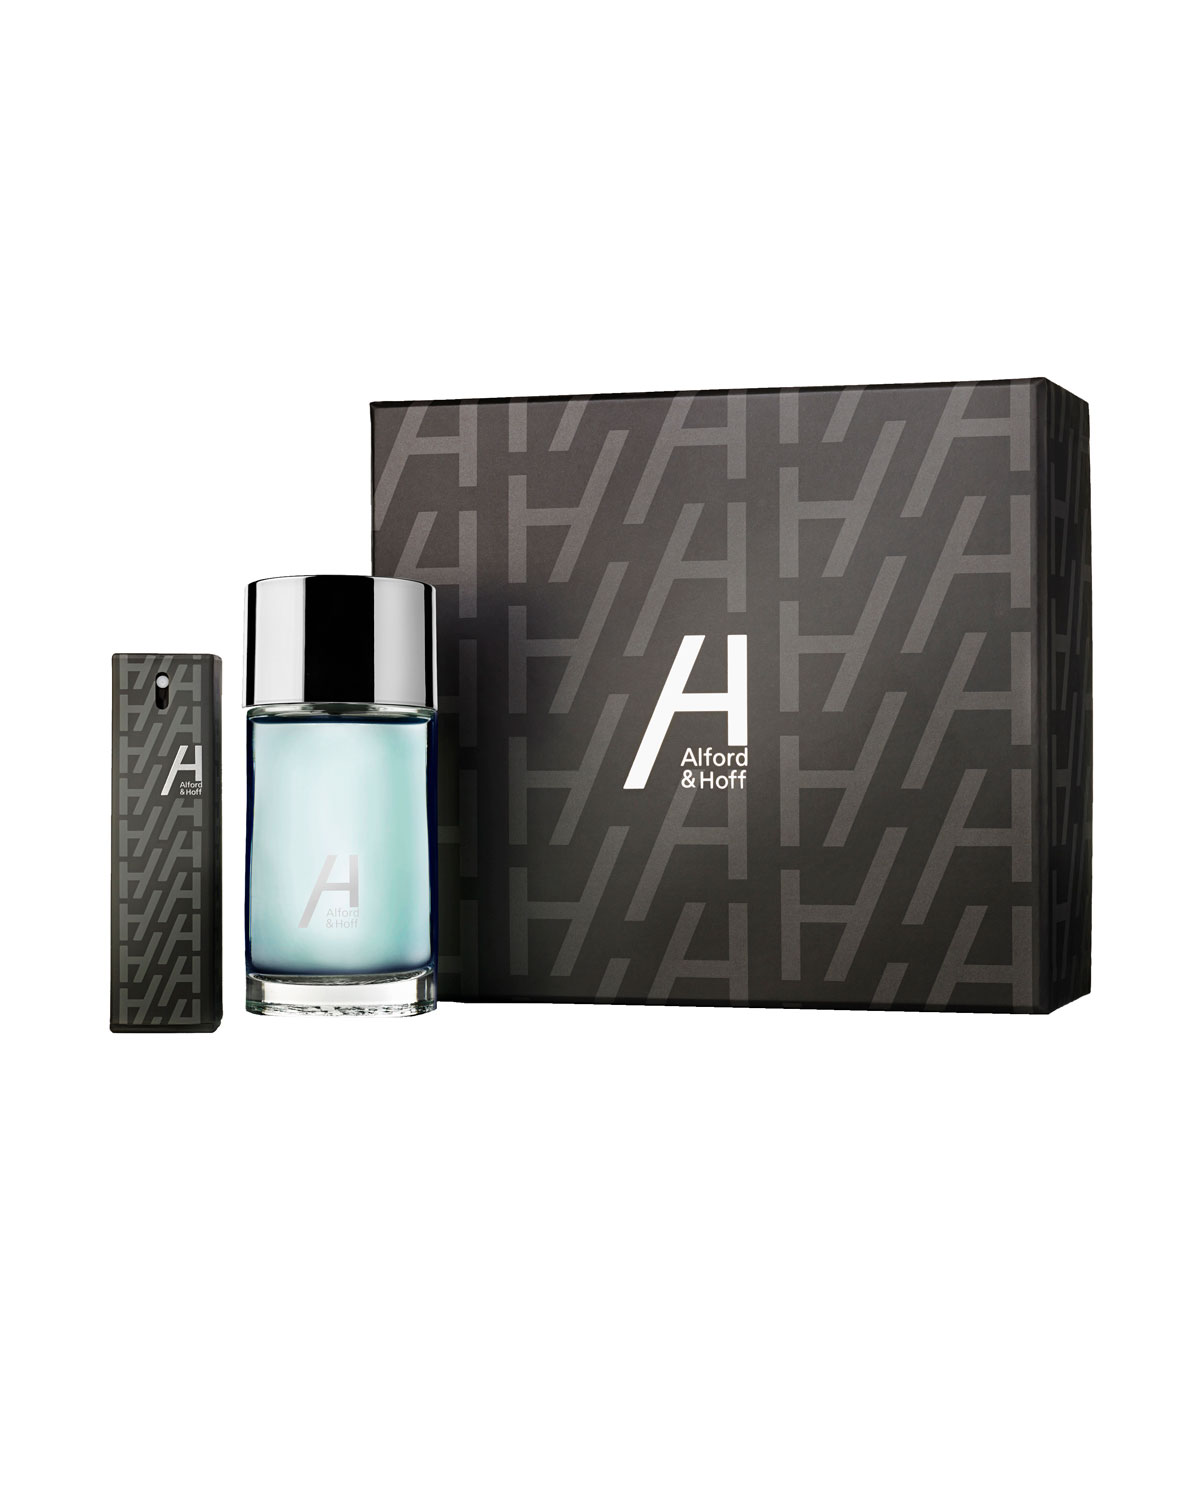 NO. 2 FRAGRANCE GIFT SET